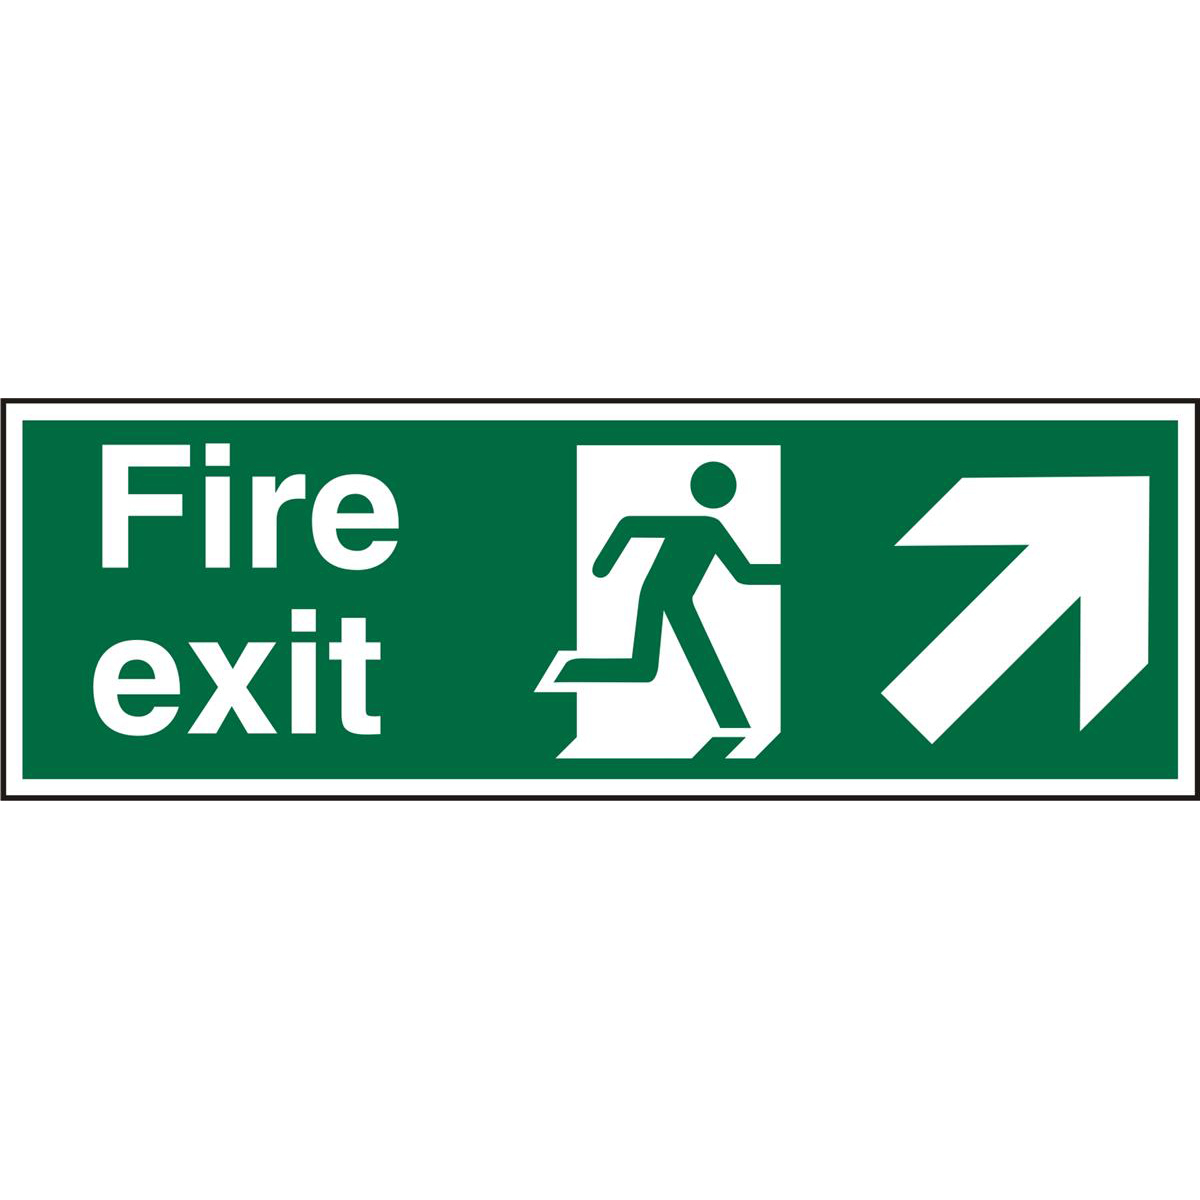 Prestige Sign 2mm DS 300x100 FireExit Man Running Right&Arrow Ref ACSP316300x100 Up to 10 Day Leadtime